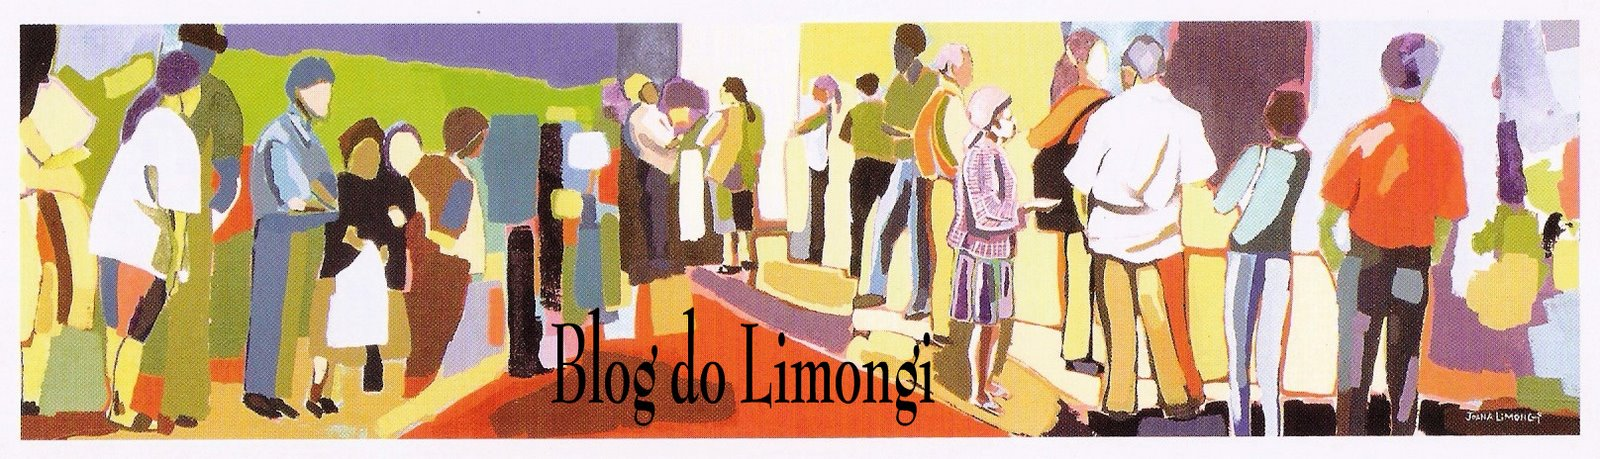 Blog do Limongi